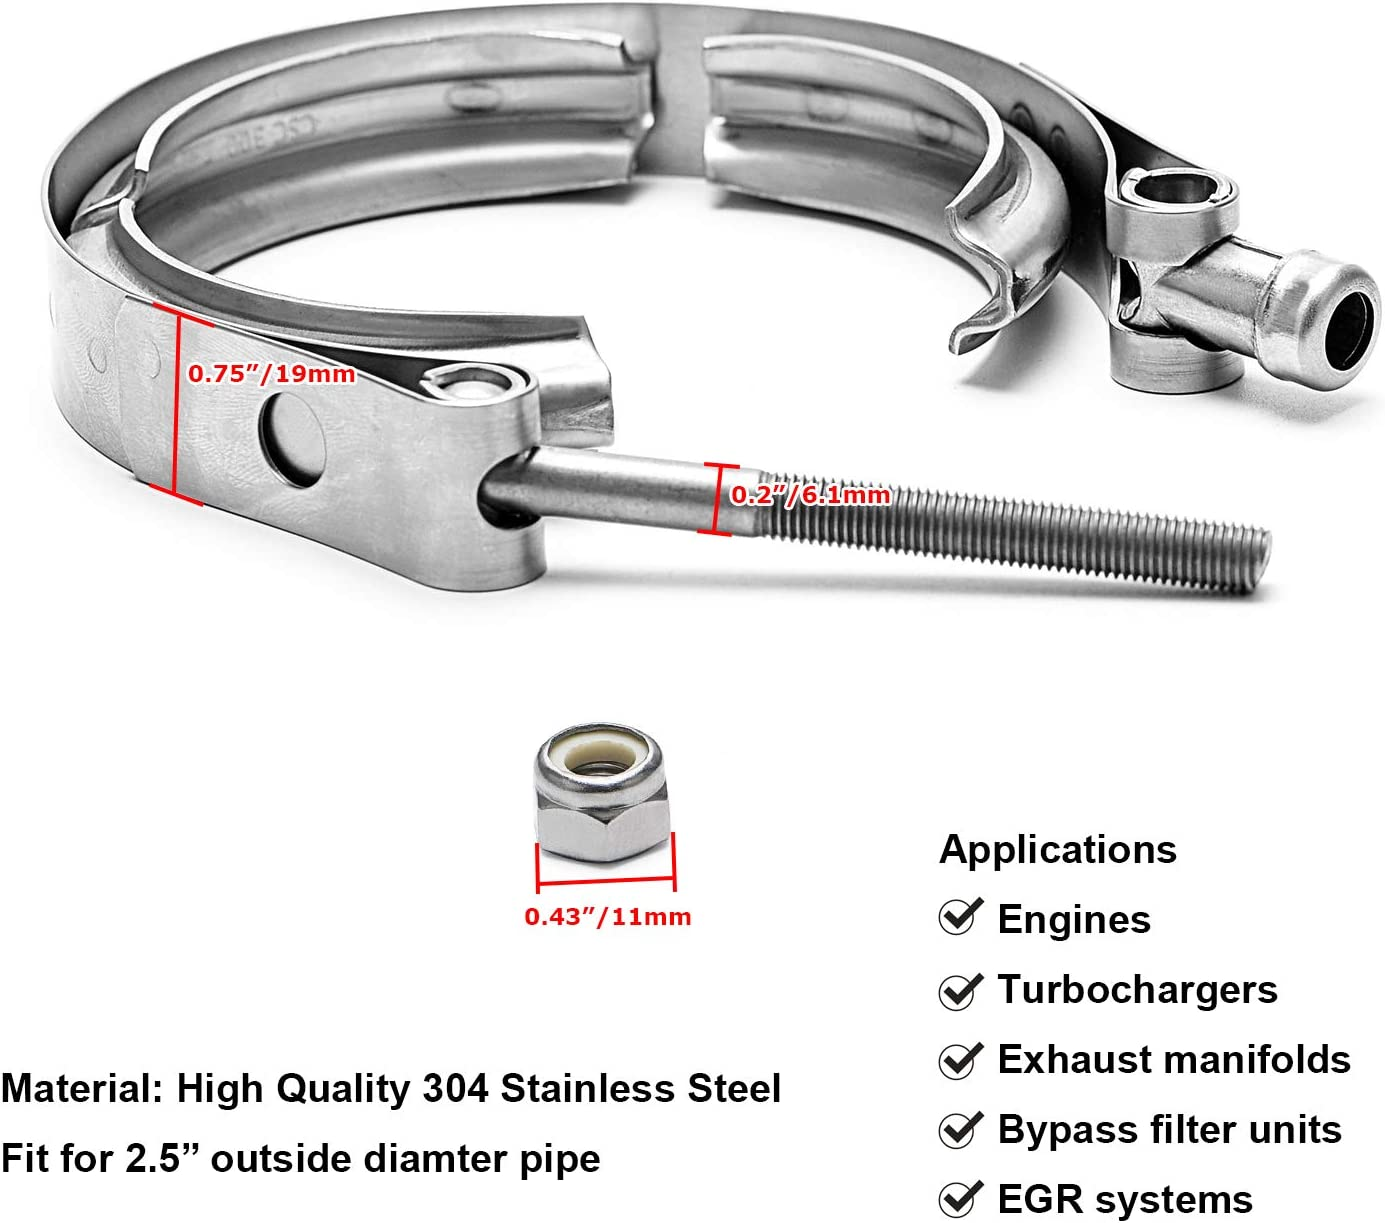 Exhaust Systems PTNHZ Universal Stainless Steel 2V Band Clamp For Turbo 2.0//2.5//2.75//3.0//3.25//3.5//4.0 Downpipes